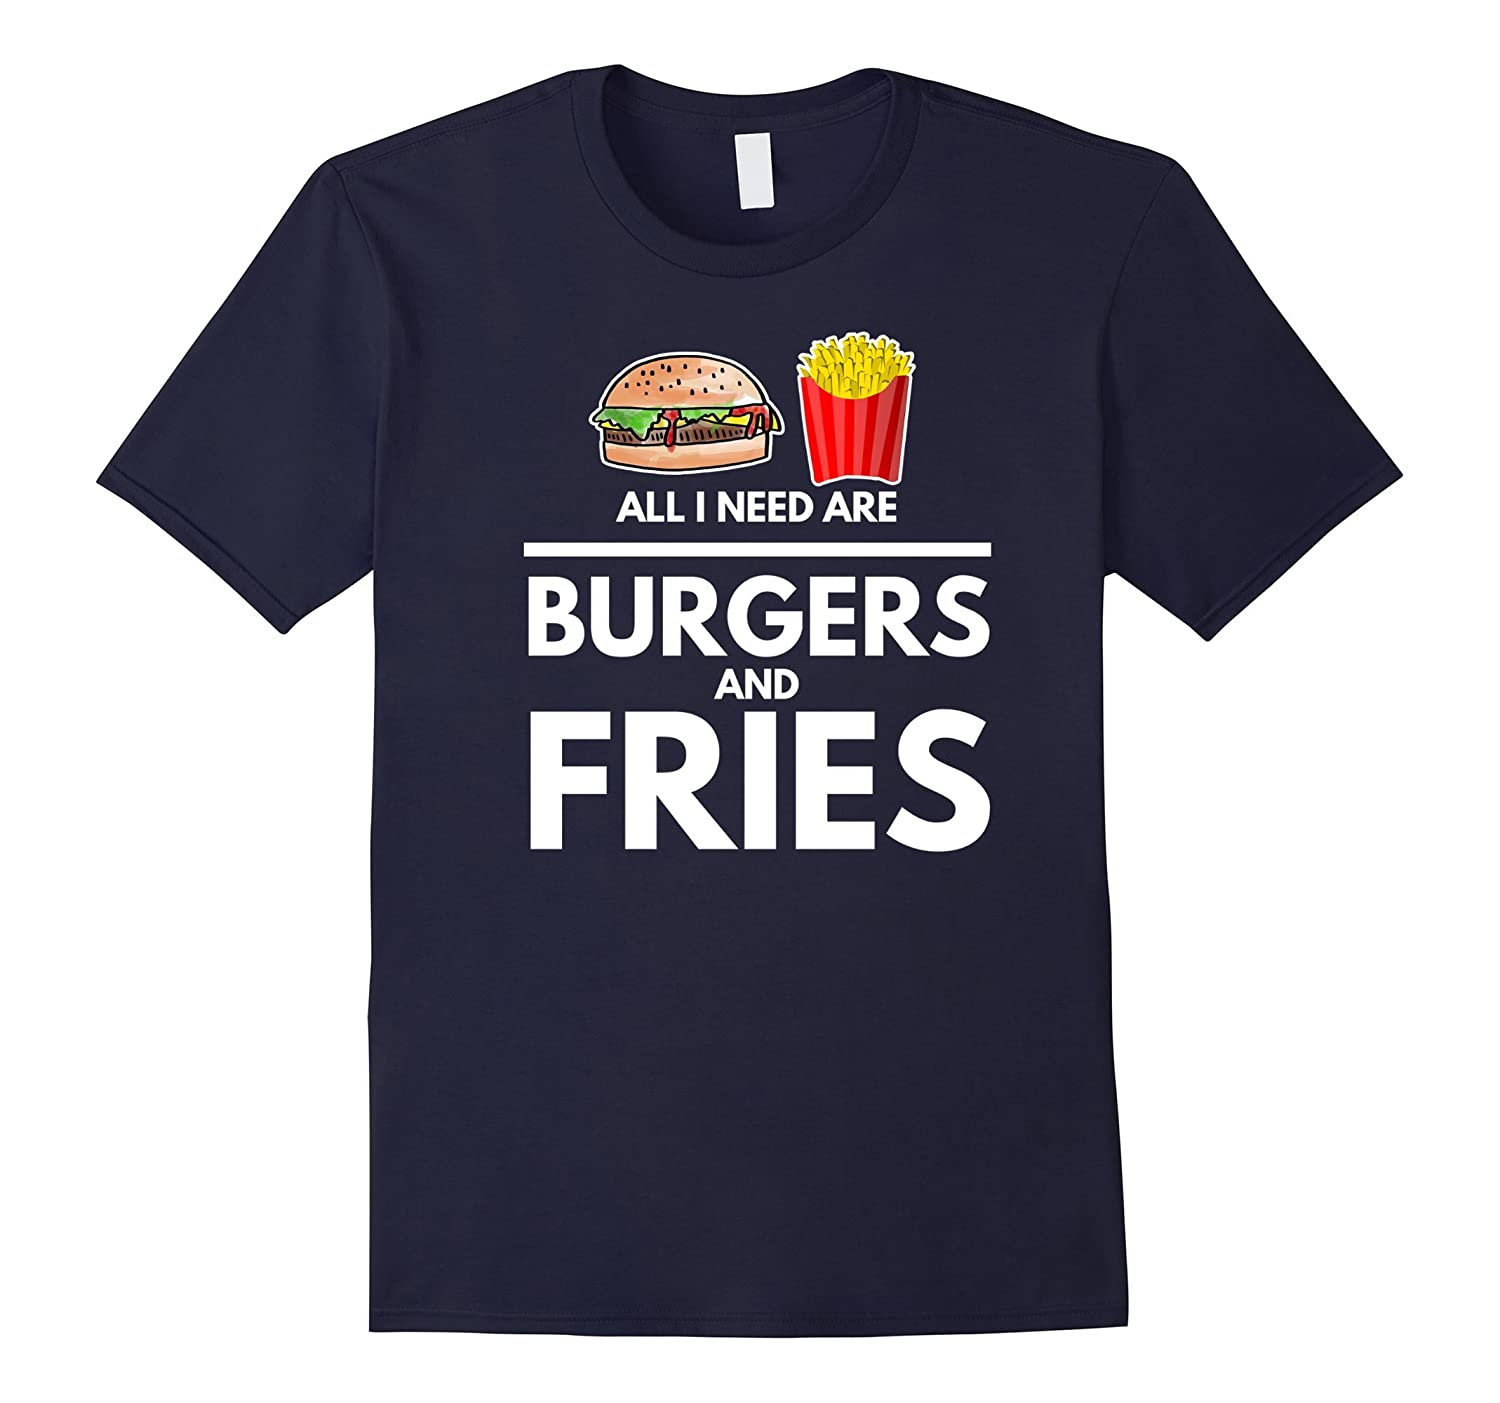 All I Need Are Burgers and Fries - Funny Food Lovers Shirt-Art